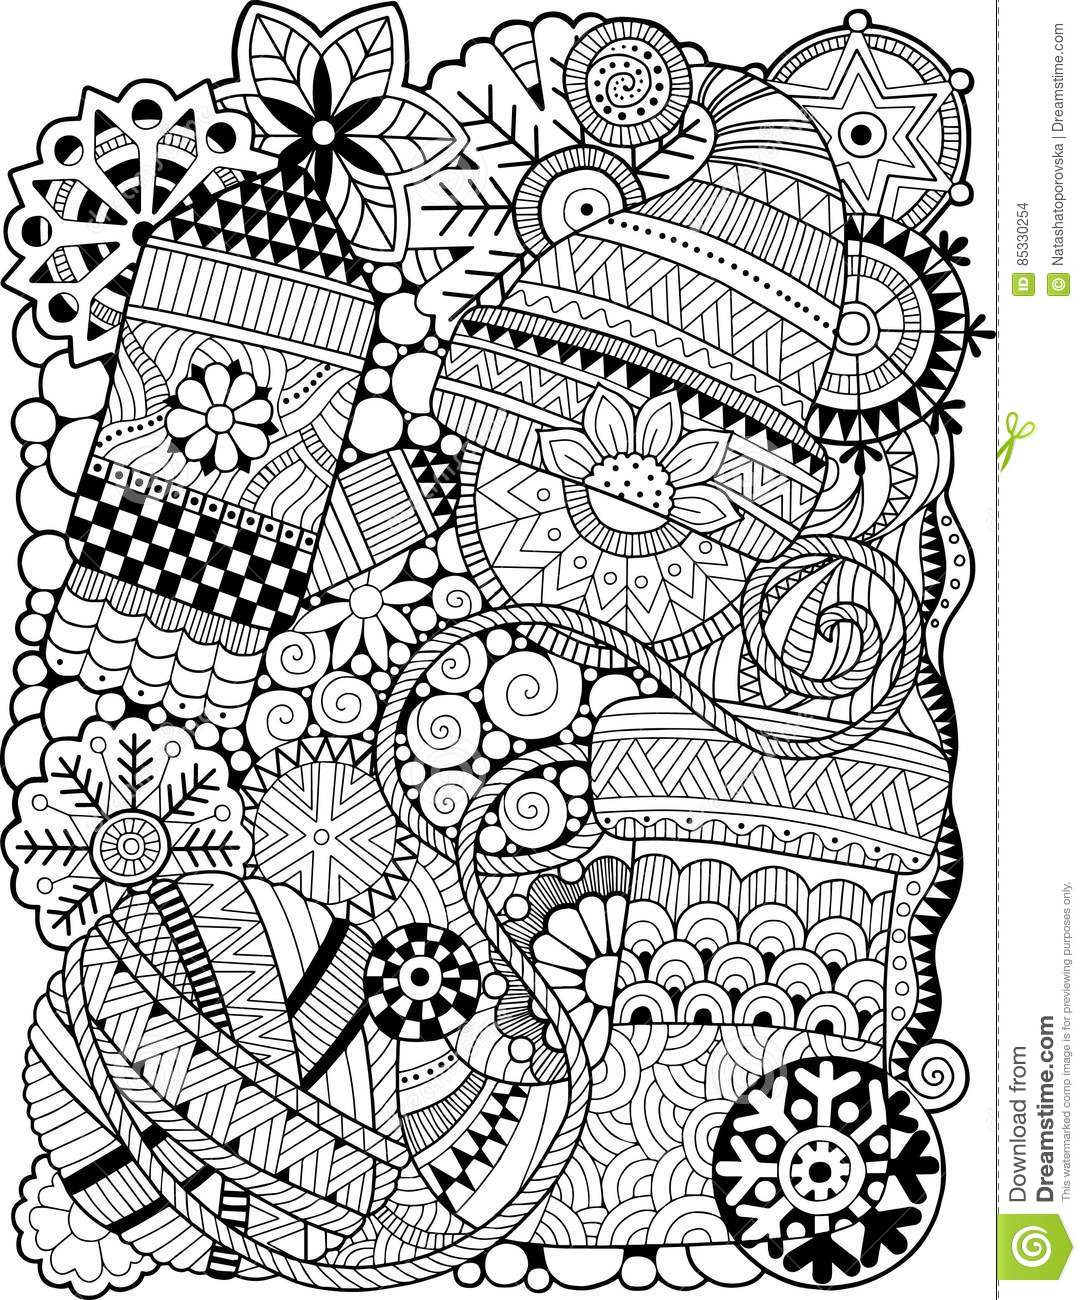 Coloring antistress for adults black and white contour decorative scarf with a ball of yarn